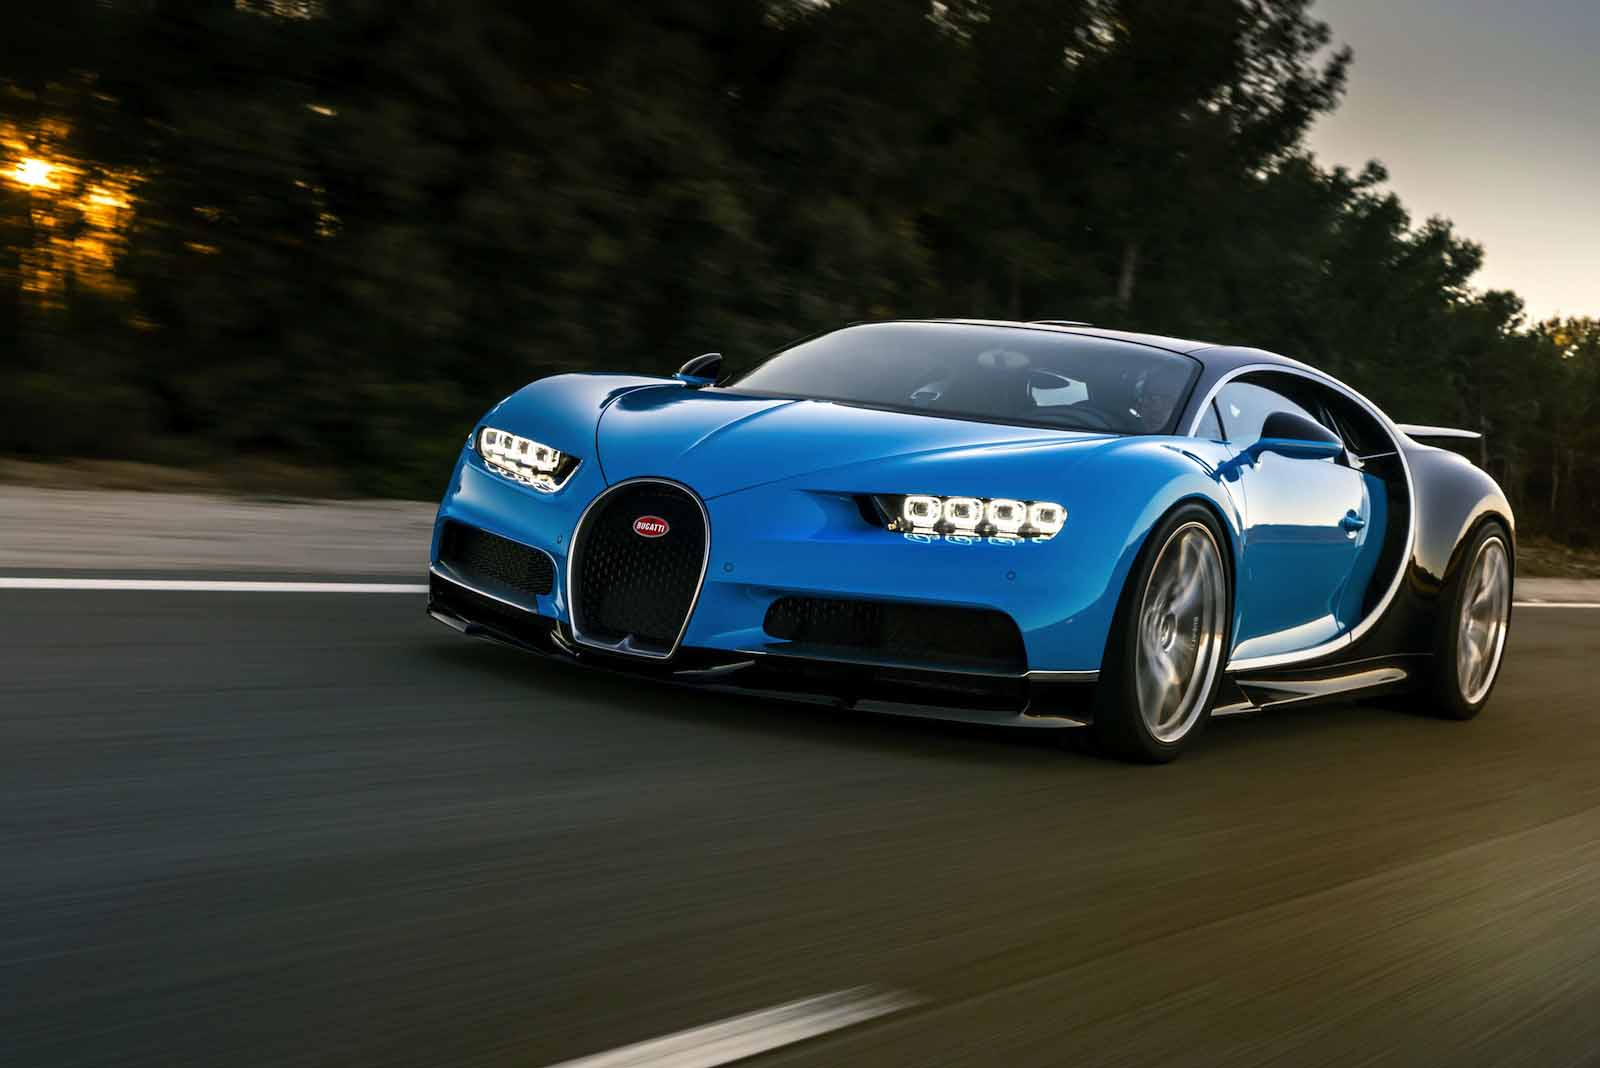 official fuel economy for bugatti chiron is so much lol » autoguide